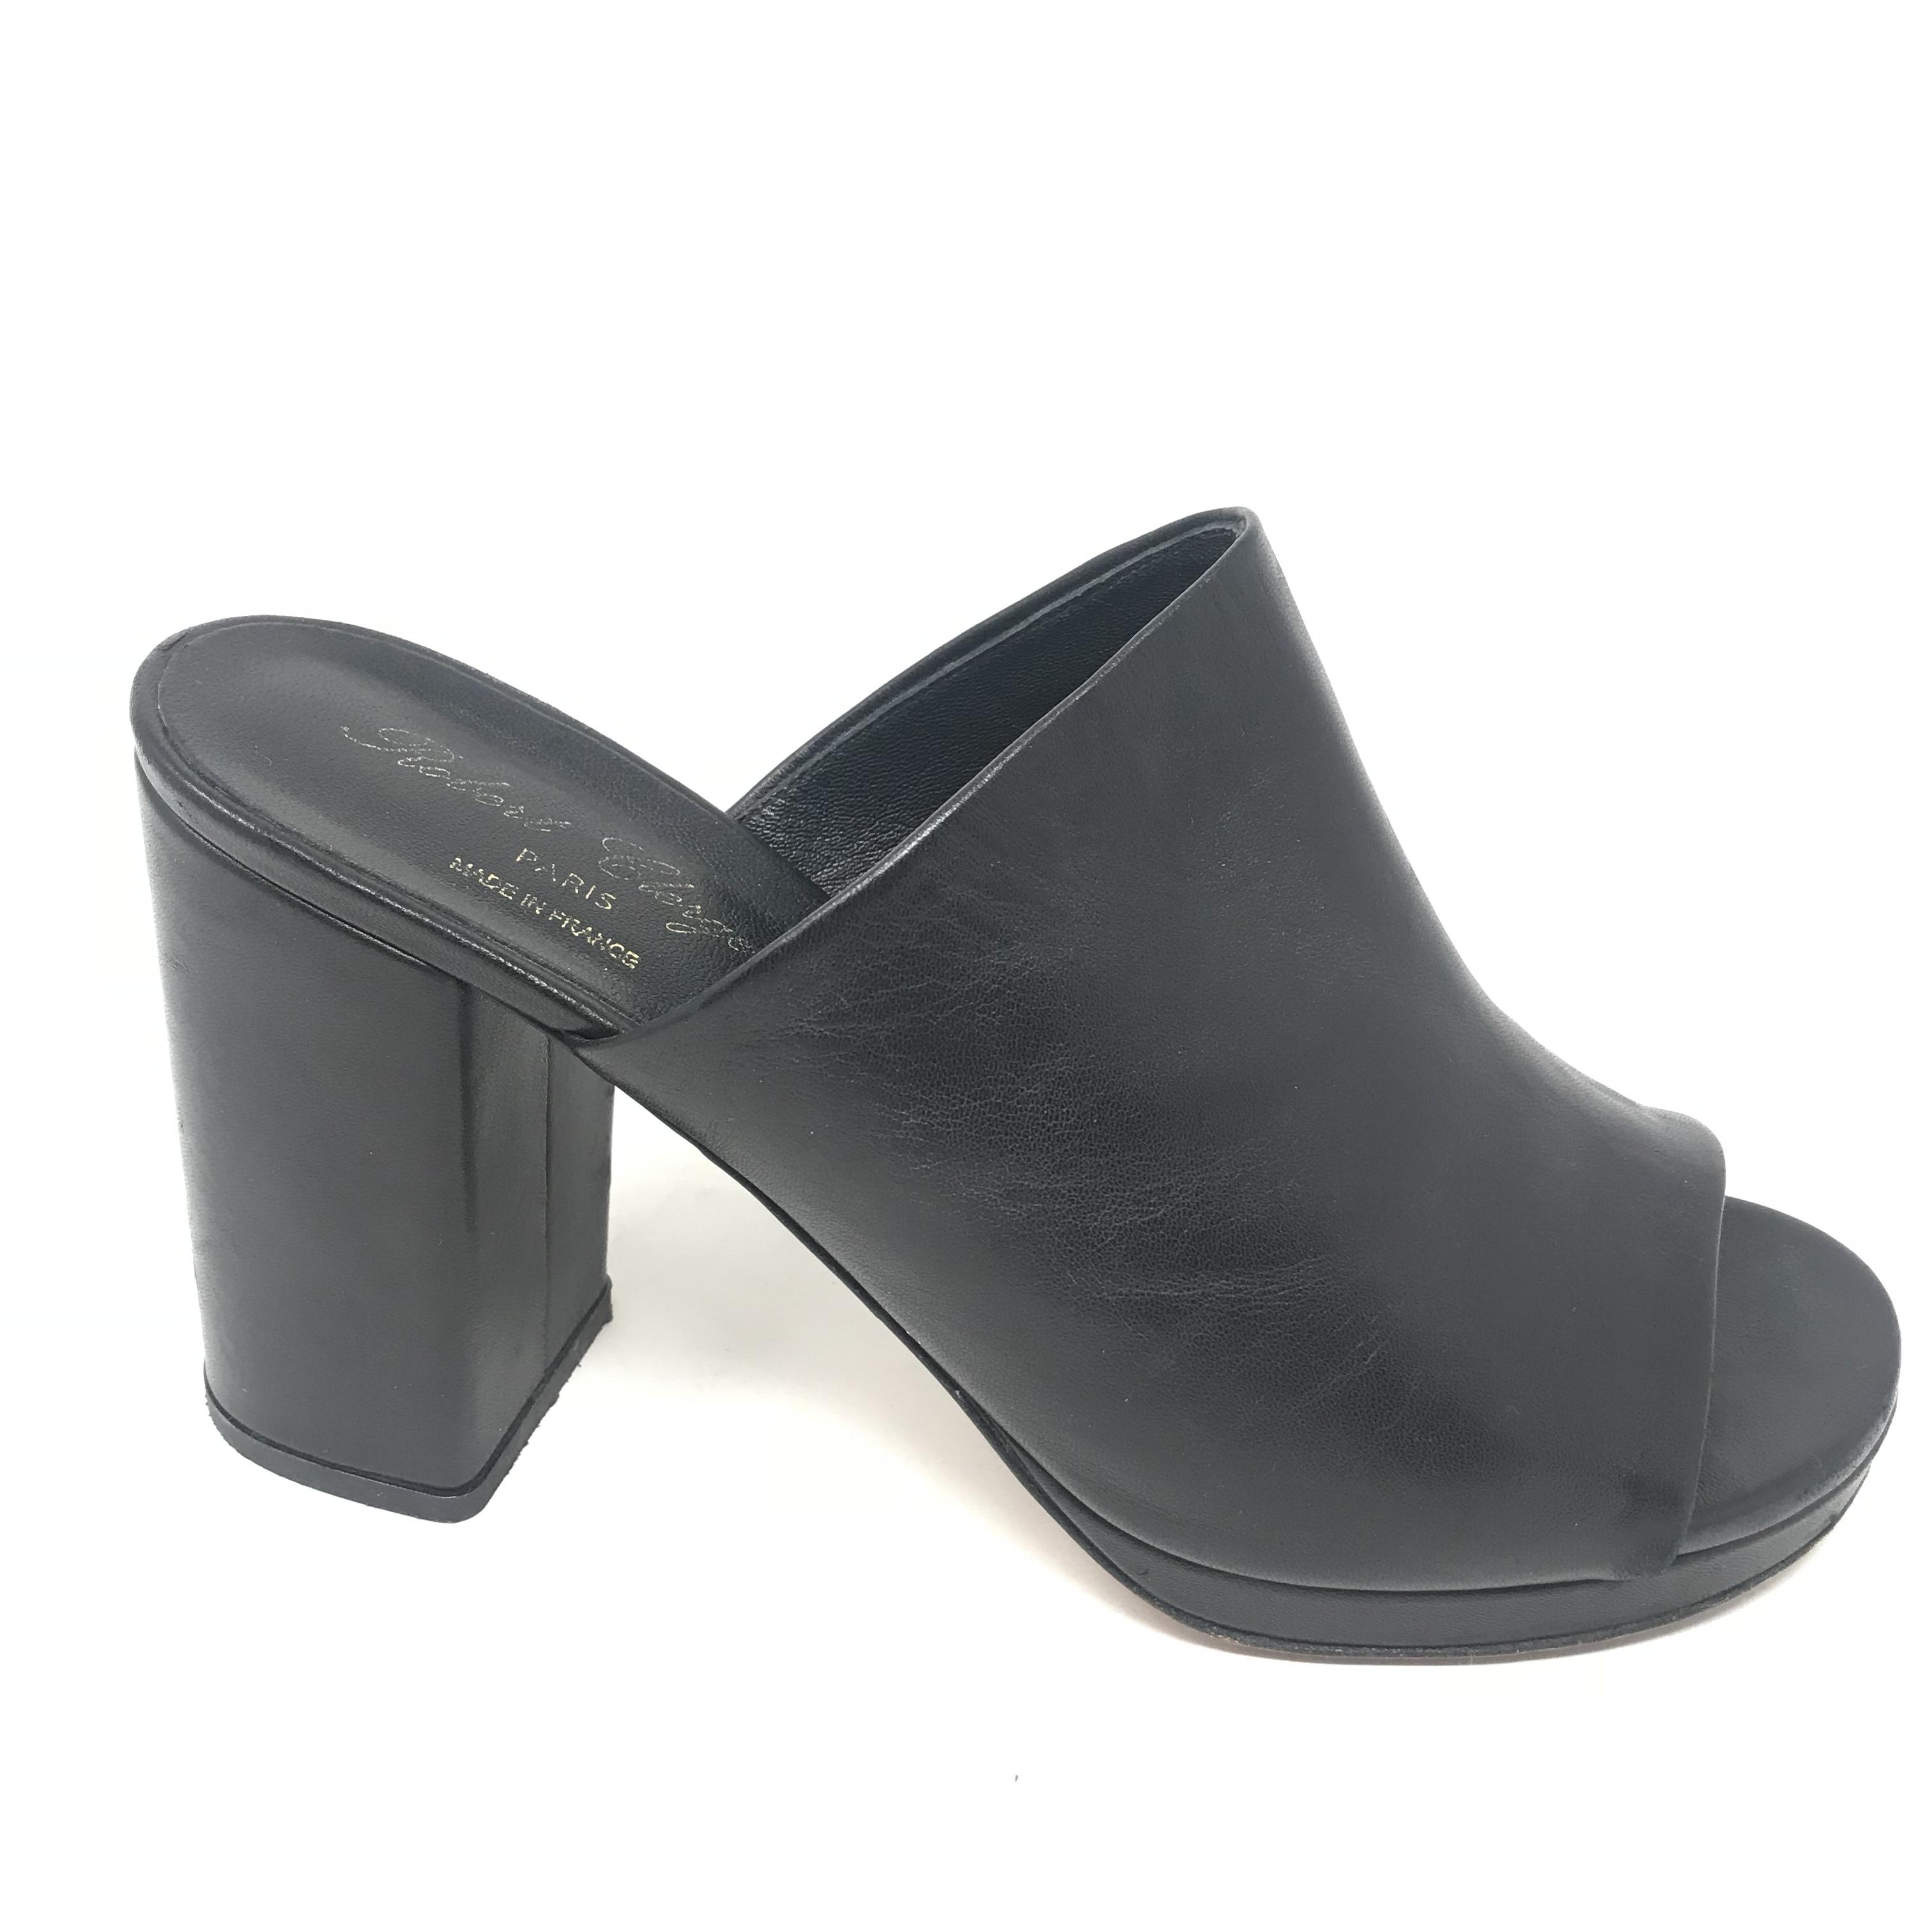 Robert Shoes Price: $98.99